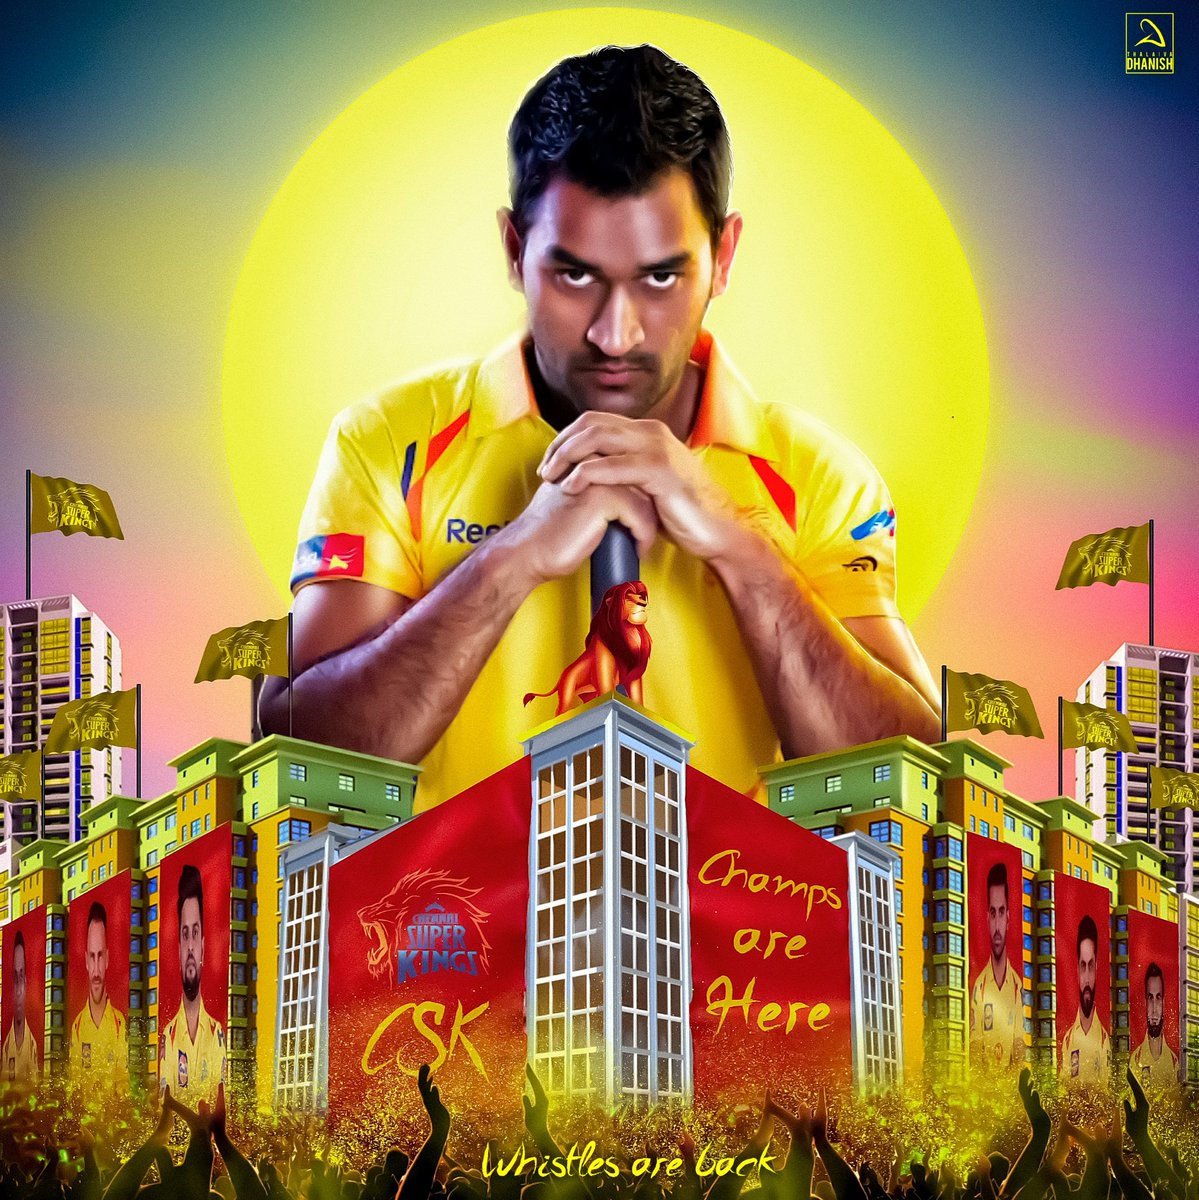 Here is the special CDP to celebrate our Men in Yellows #CSK 💛  Design by : @ThalaivaDHANISH 👌  #WhistlePodu #Yellove #Anbuden  @ChennaiIPL #Master